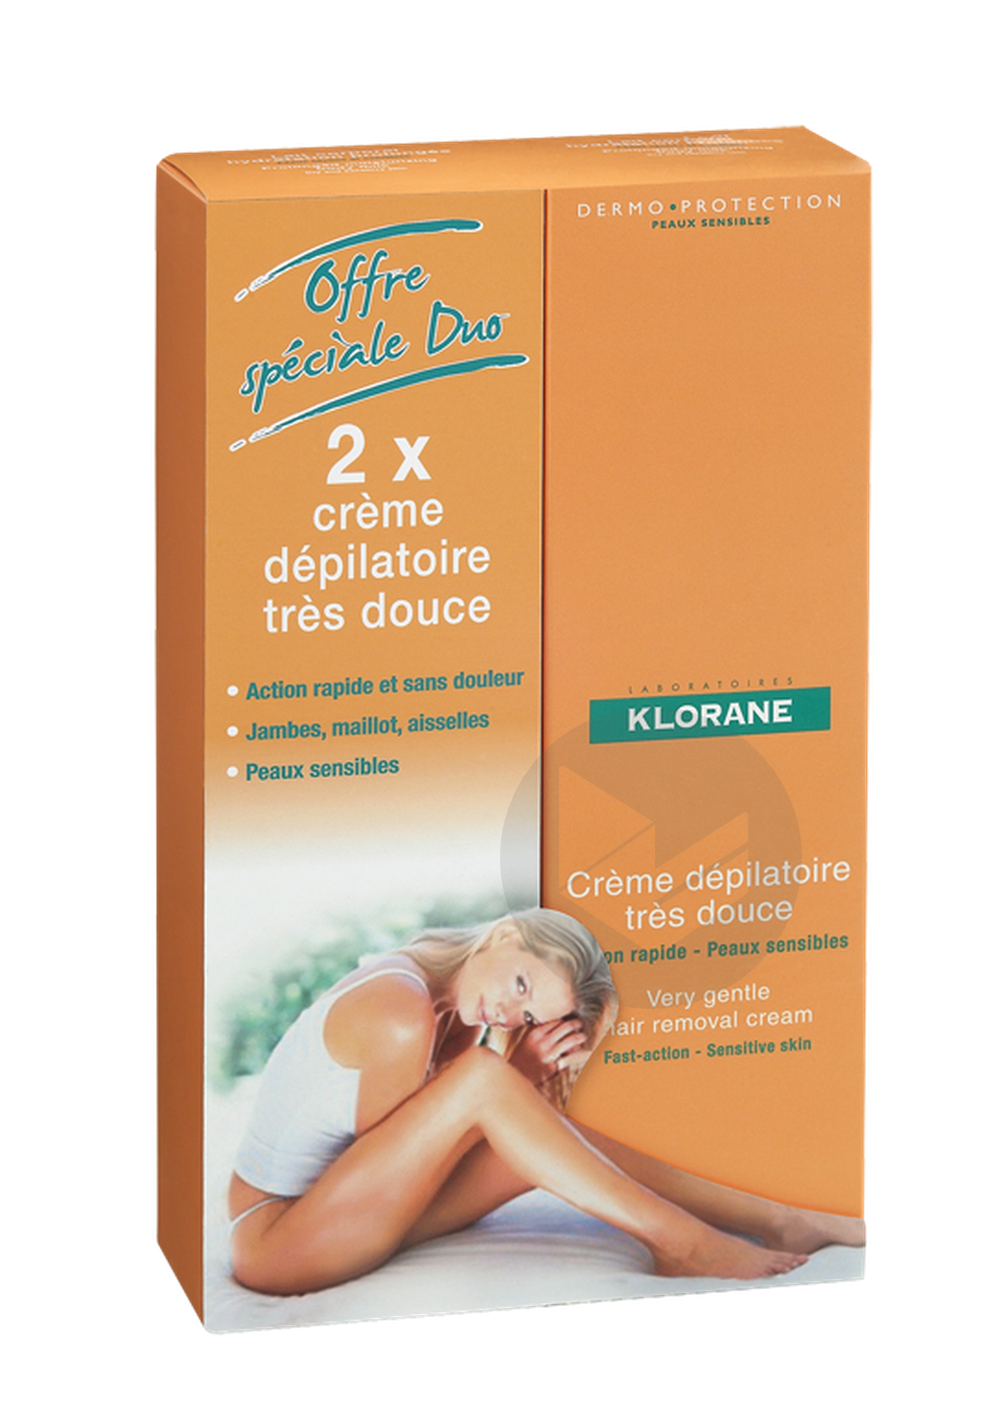 Duo Creme Depilatoire 2 X 150 Ml